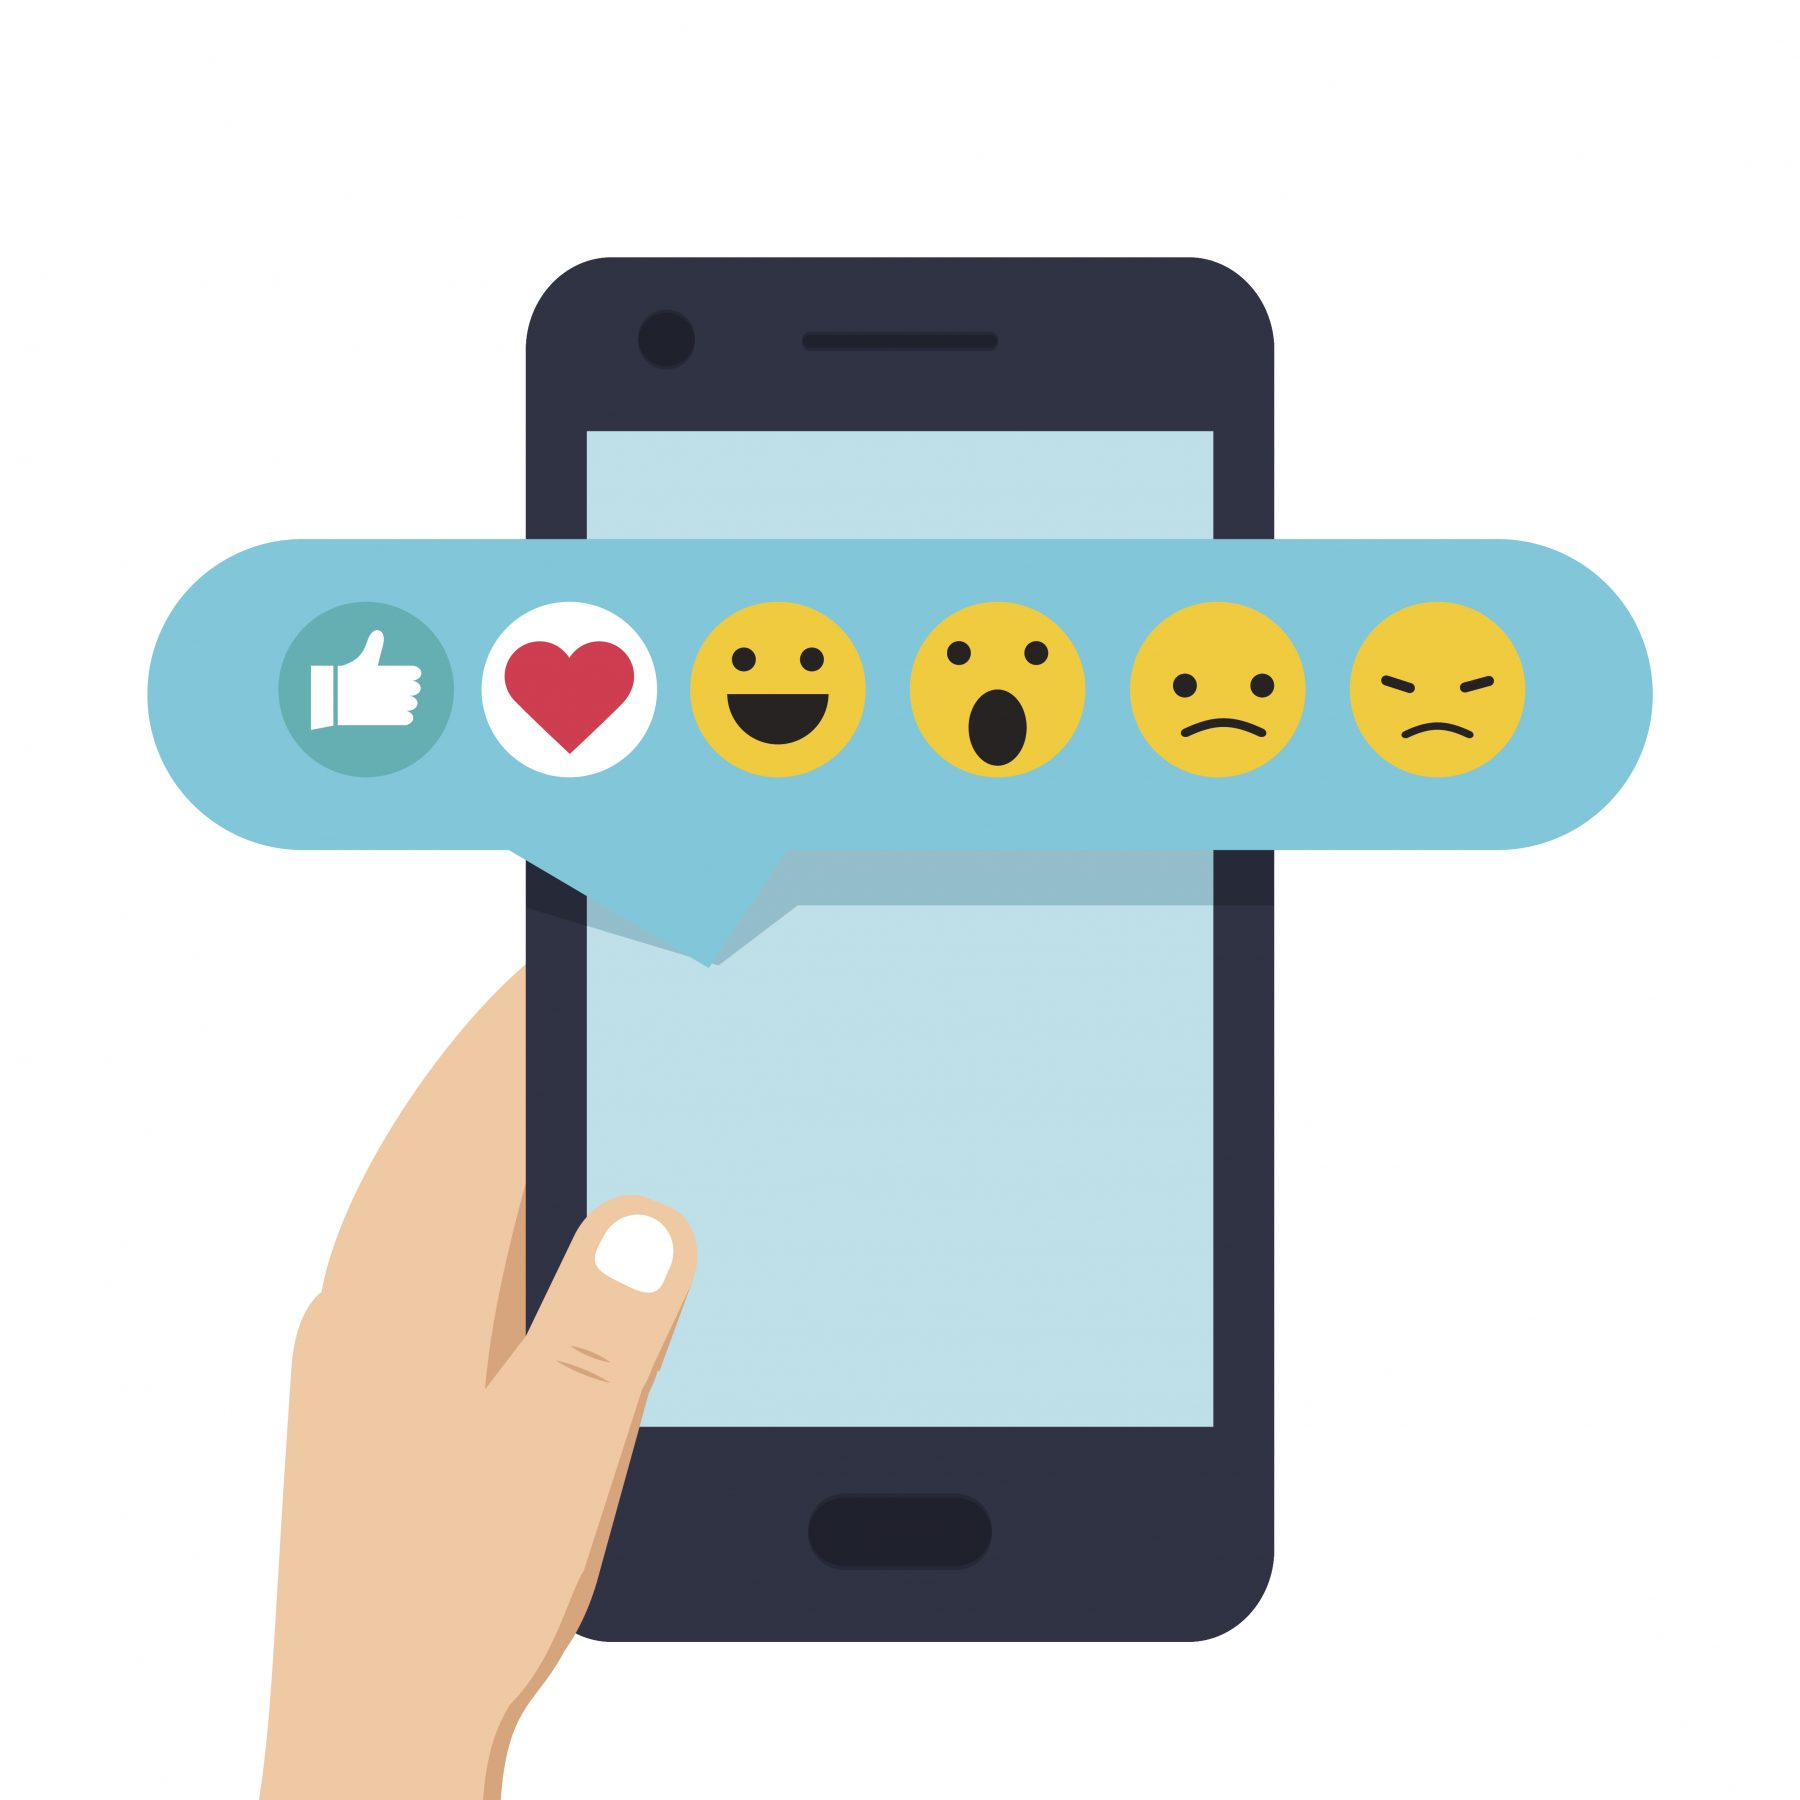 Human hand holding mobile phone with social network feedback emoticons : thumbs up, like, smile, angry, on screen.